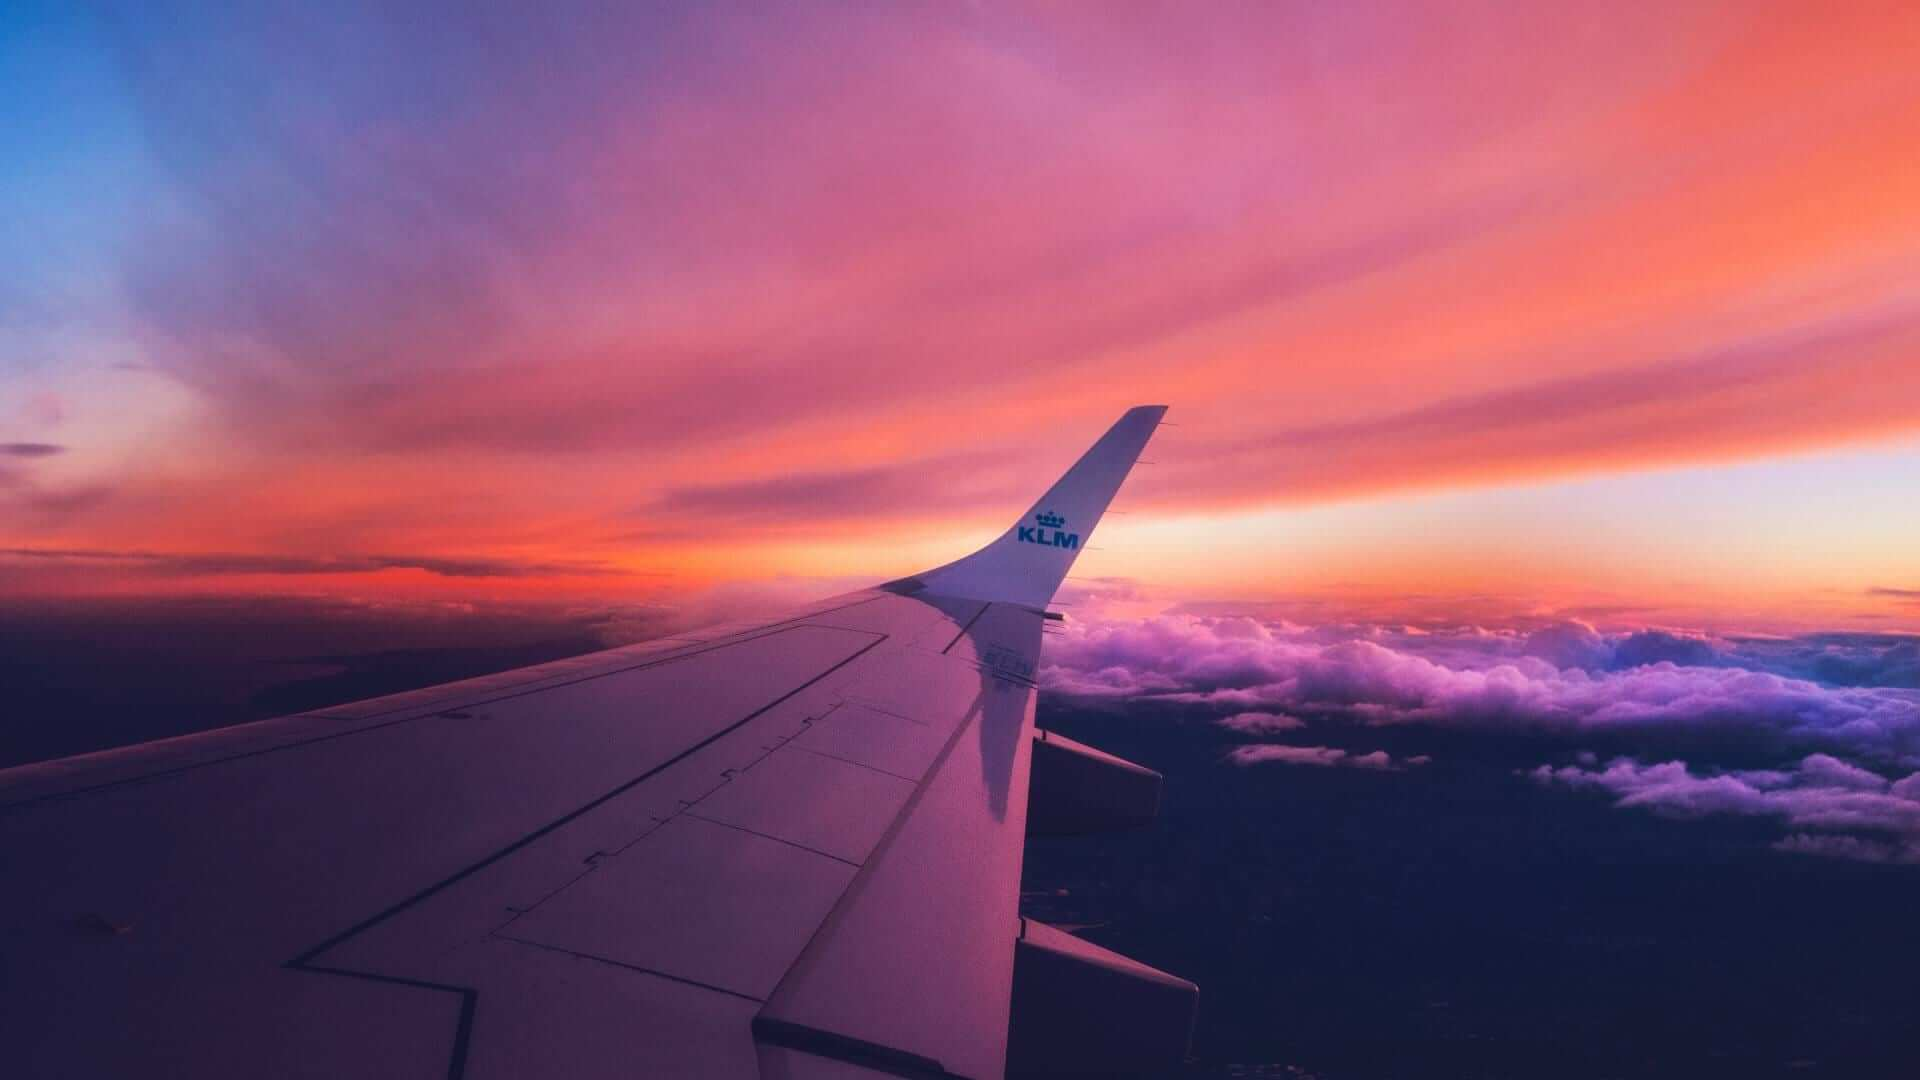 An airplane wing and a pink sky